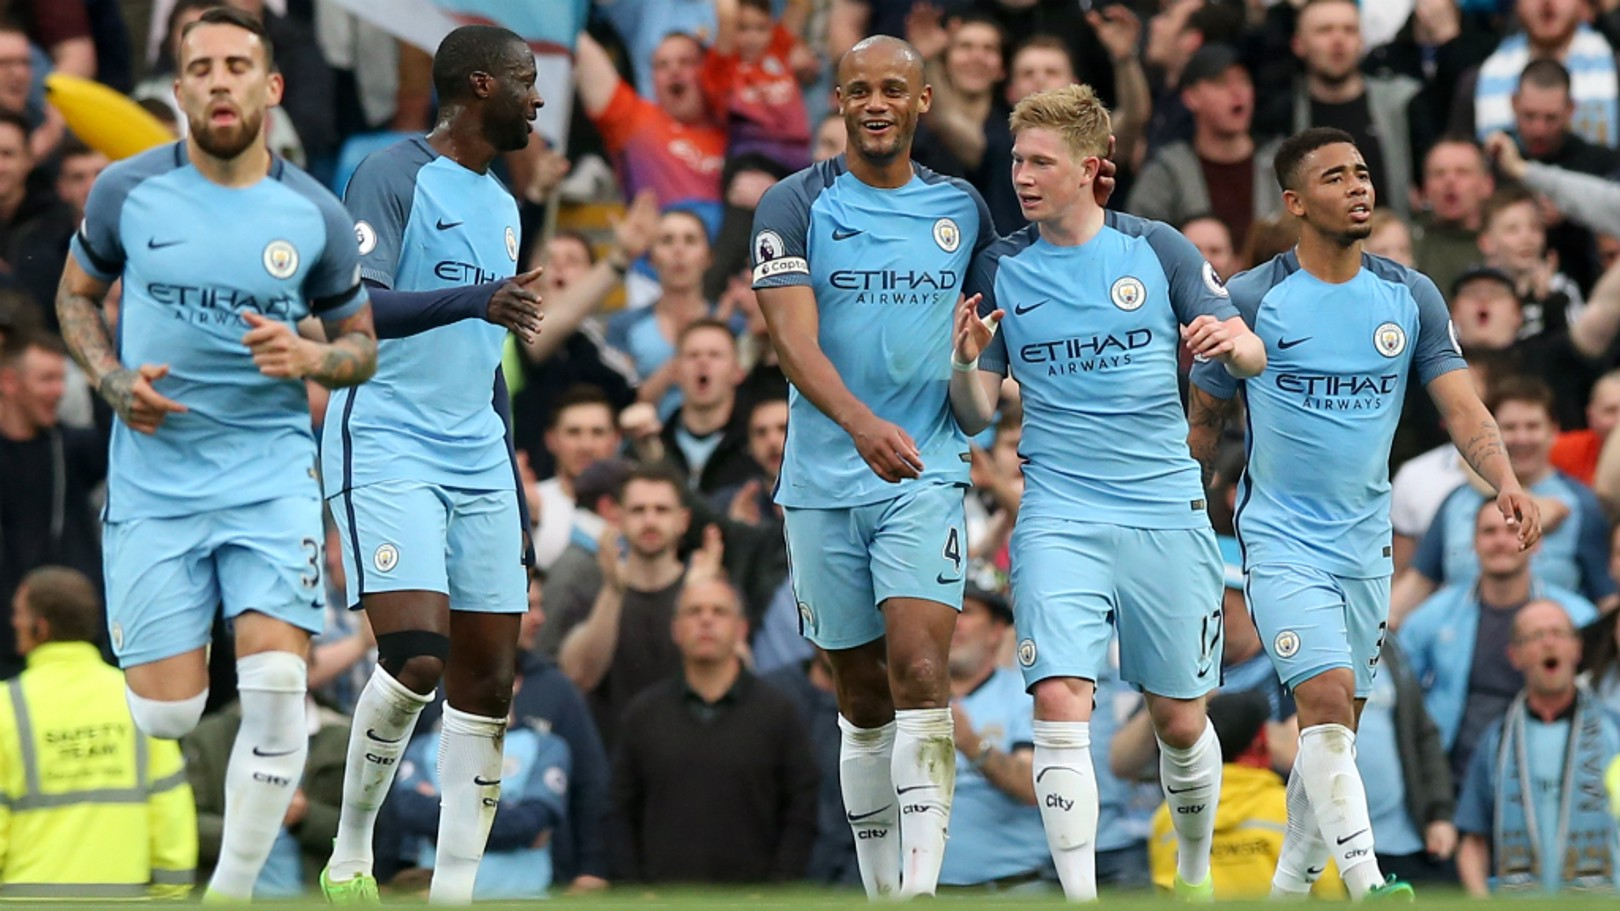 SUPER KEV: The team congratulate Kevin De Bruyne on his stunning strike